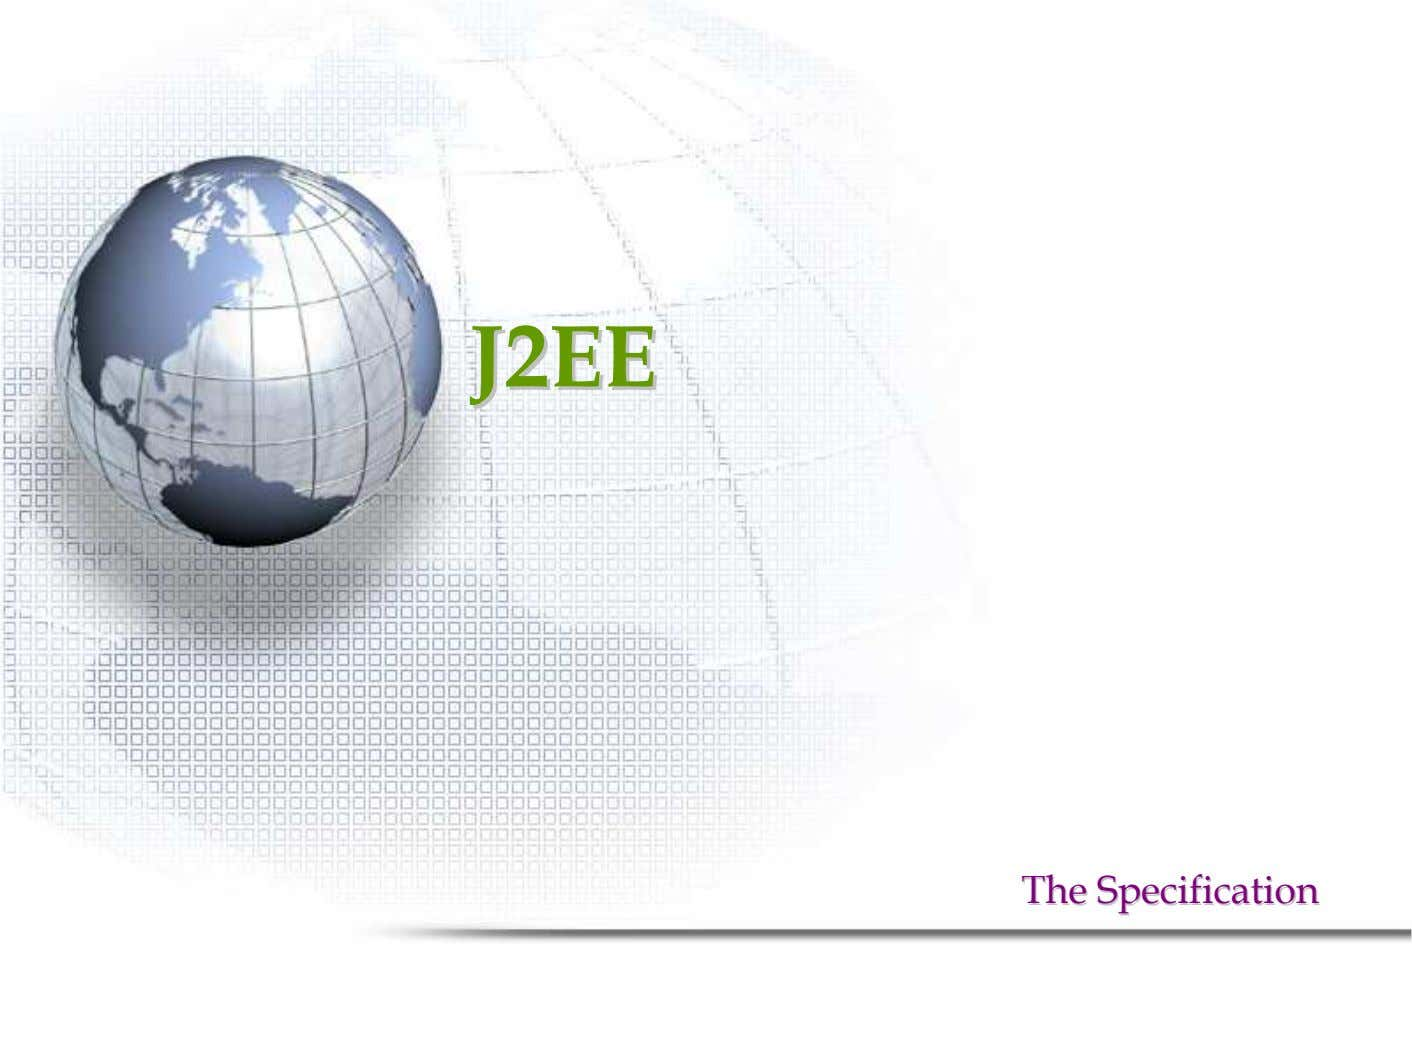 J2EEJ2EE TheThe SpecificationSpecification